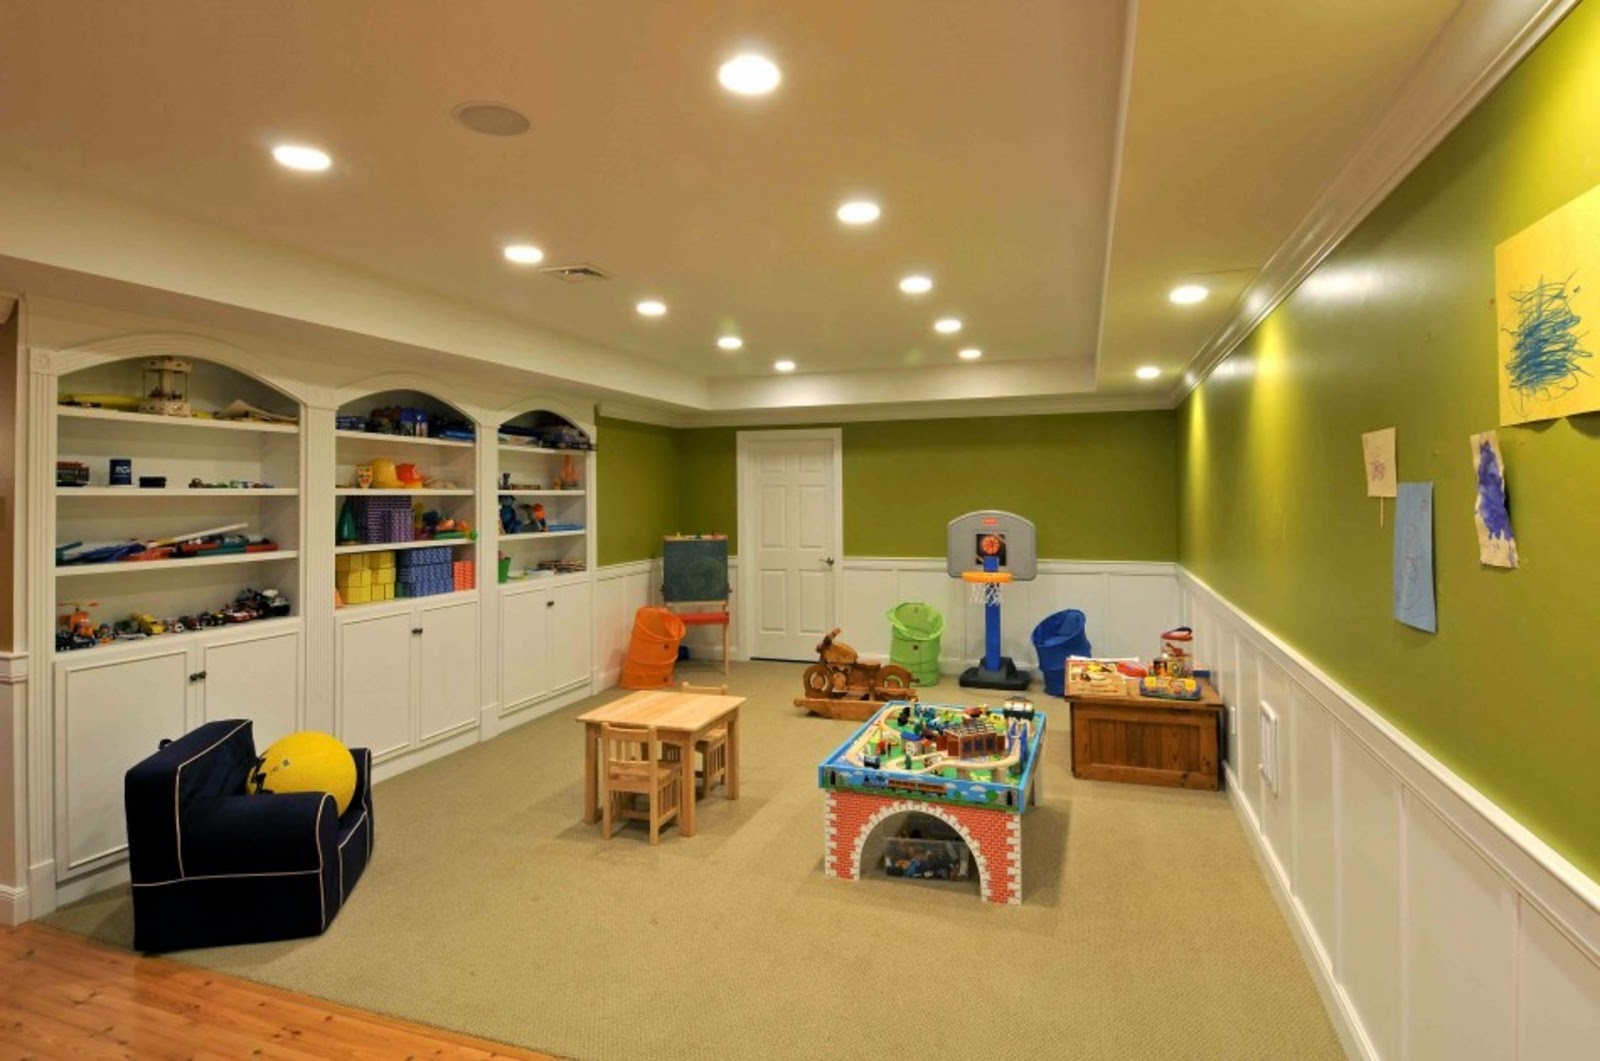 16 creative basement ceiling ideas for your basement instant knowledge - Finished basement ideas pictures ...